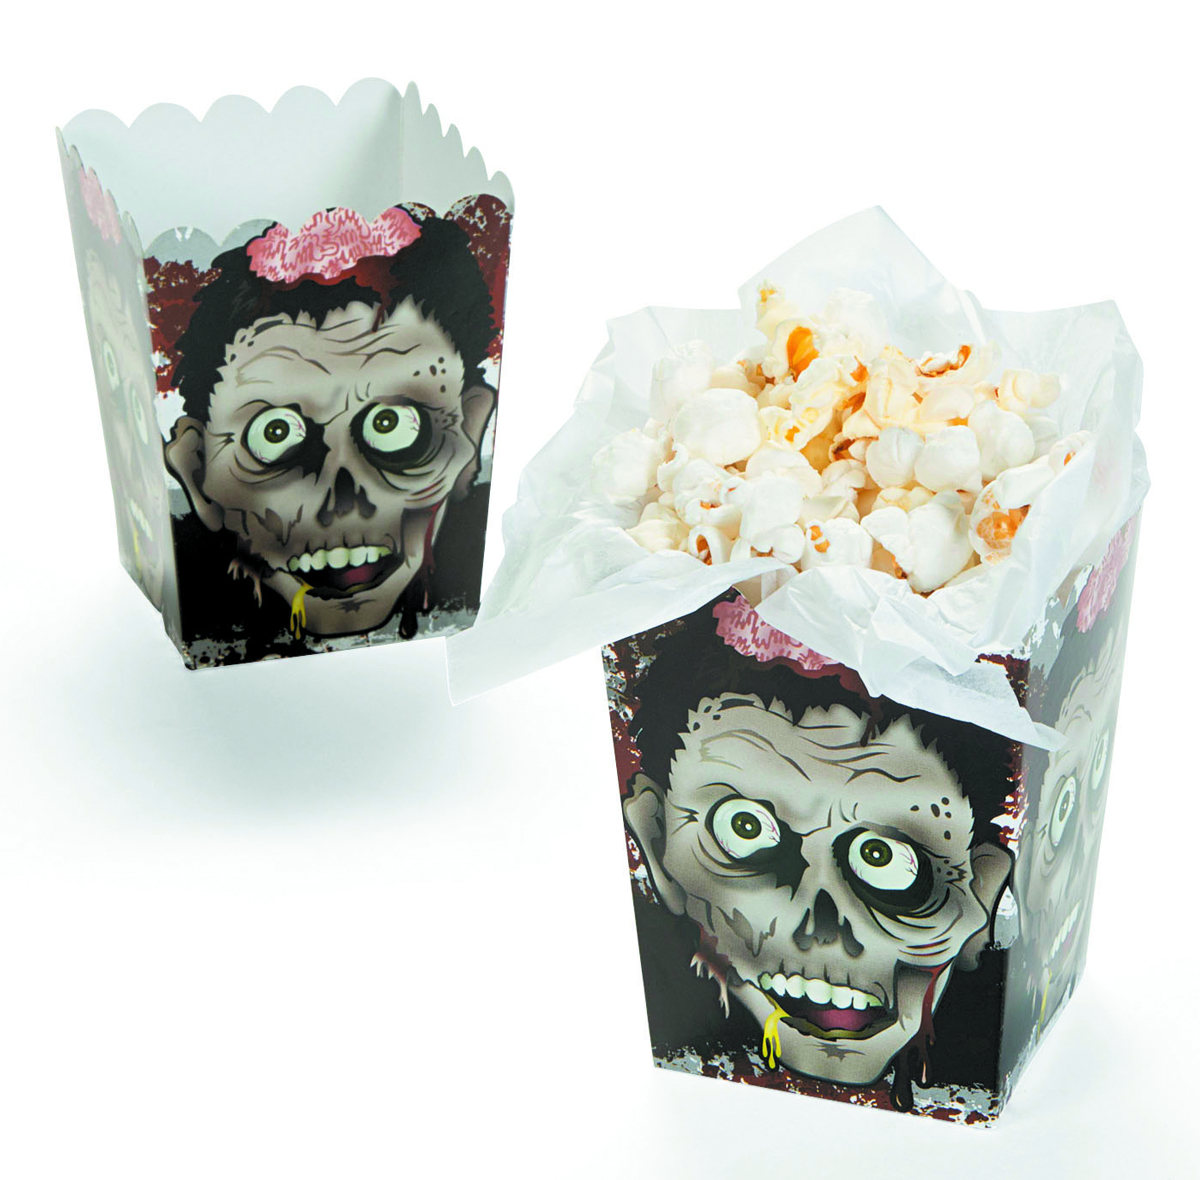 ZOMBIE PARTY PAPER MINI ZOMBIE HEAD POPCORN BOXES 1DZ